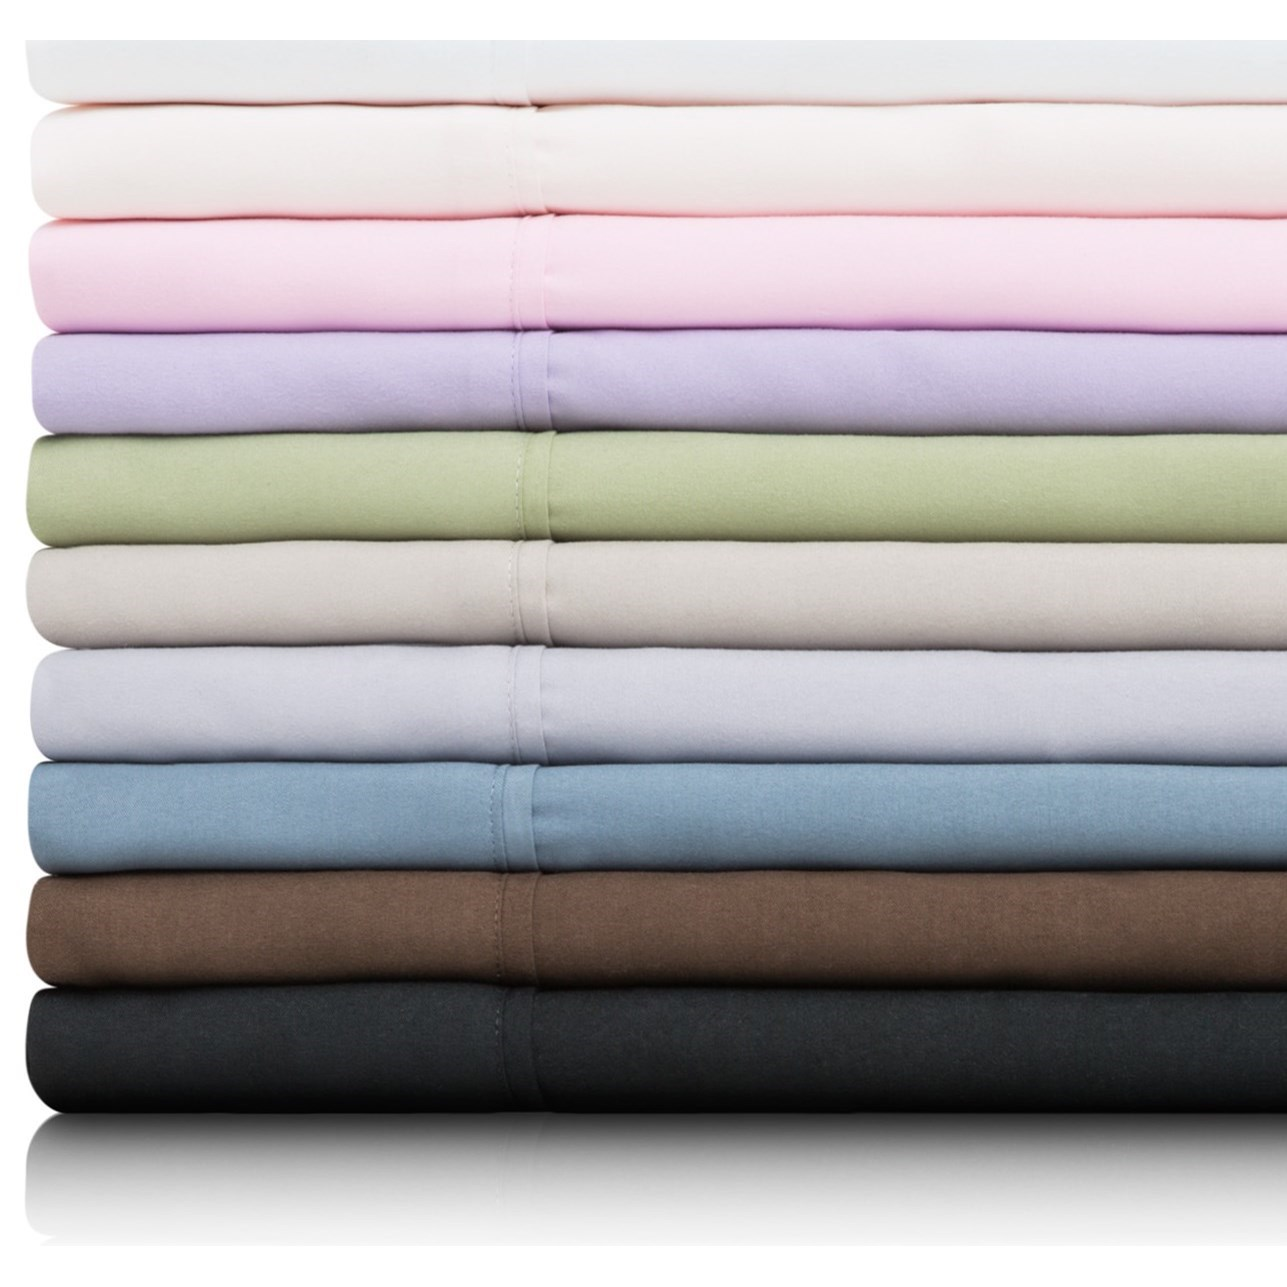 Malouf Brushed Microfiber Queen Woven™ Brushed Microfiber Short Sheet  - Item Number: MA90RQASMS